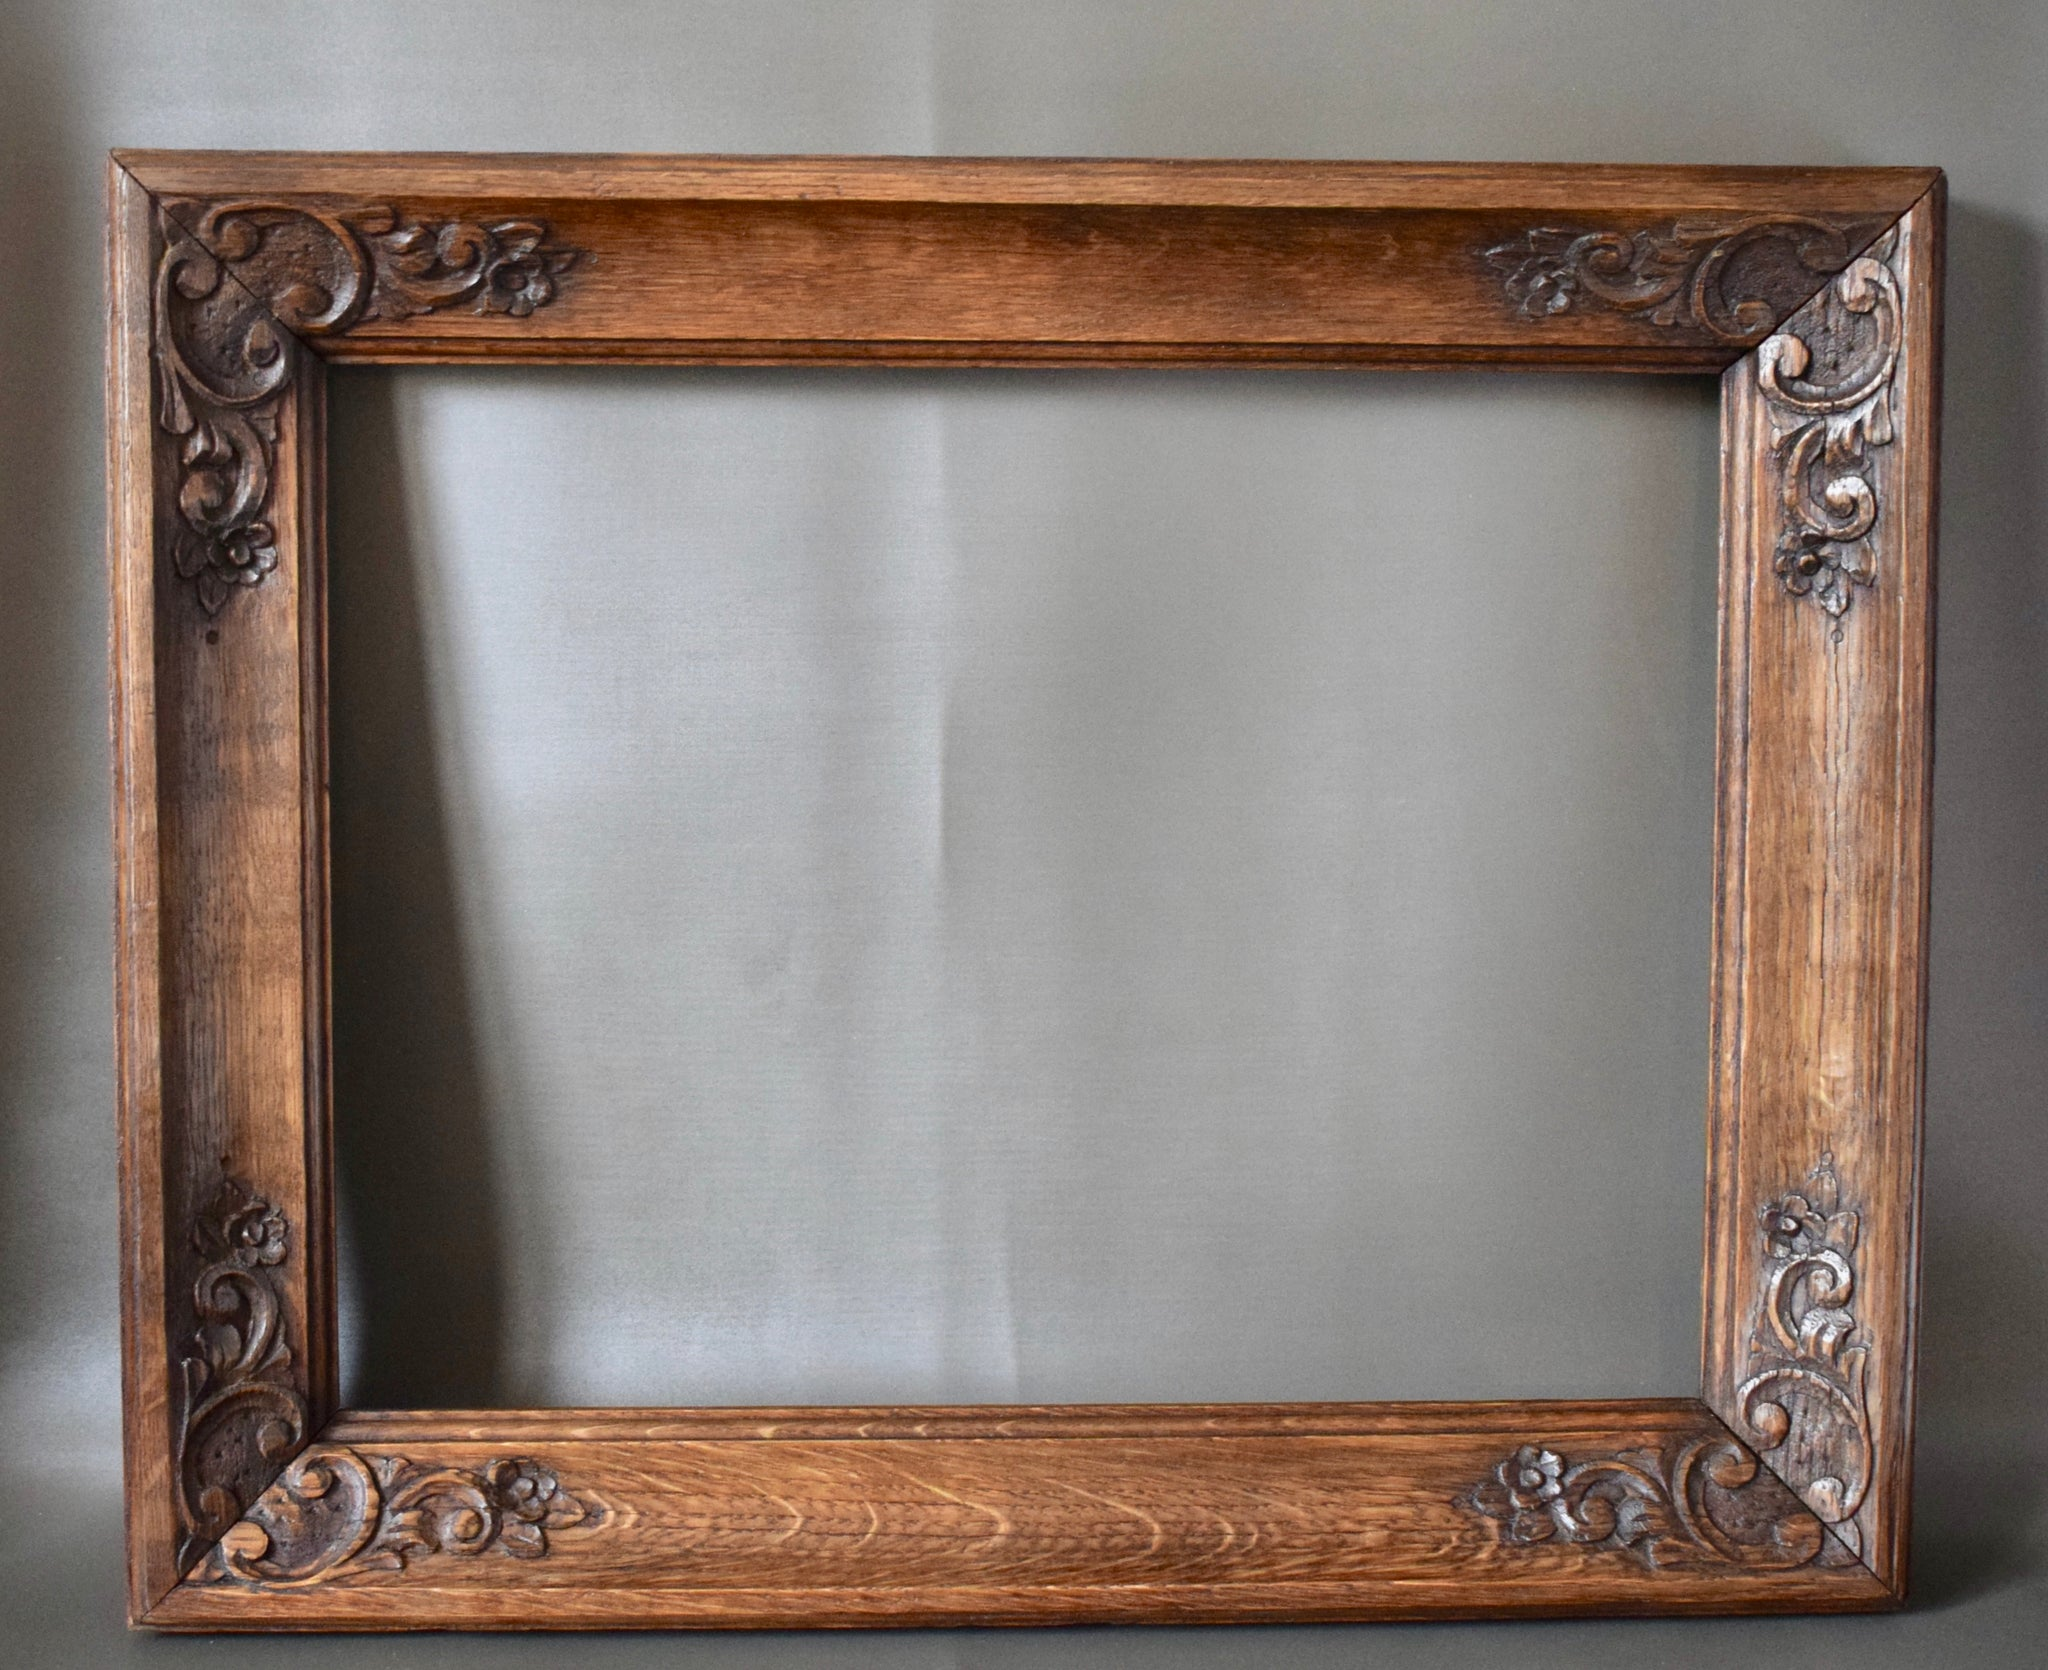 Painting Frame - Charmantiques